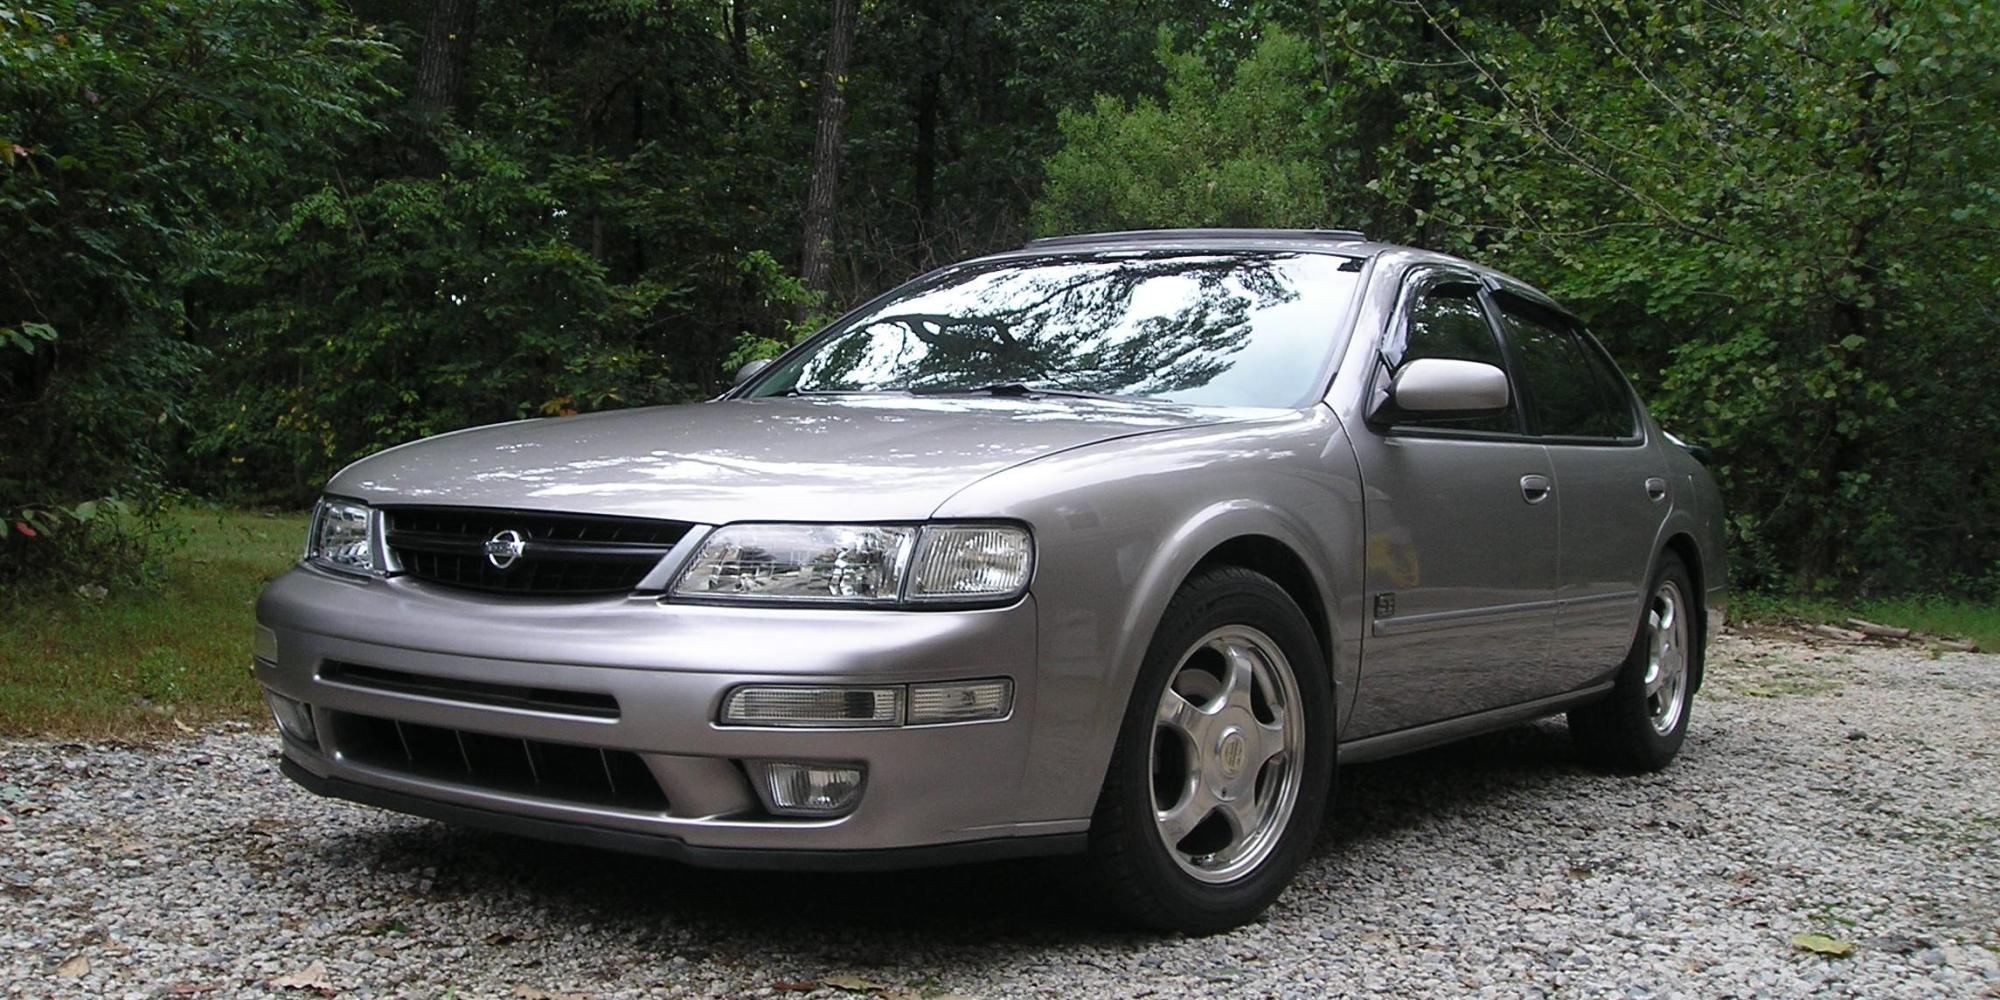 hight resolution of tomjlin 1999 nissan maxima